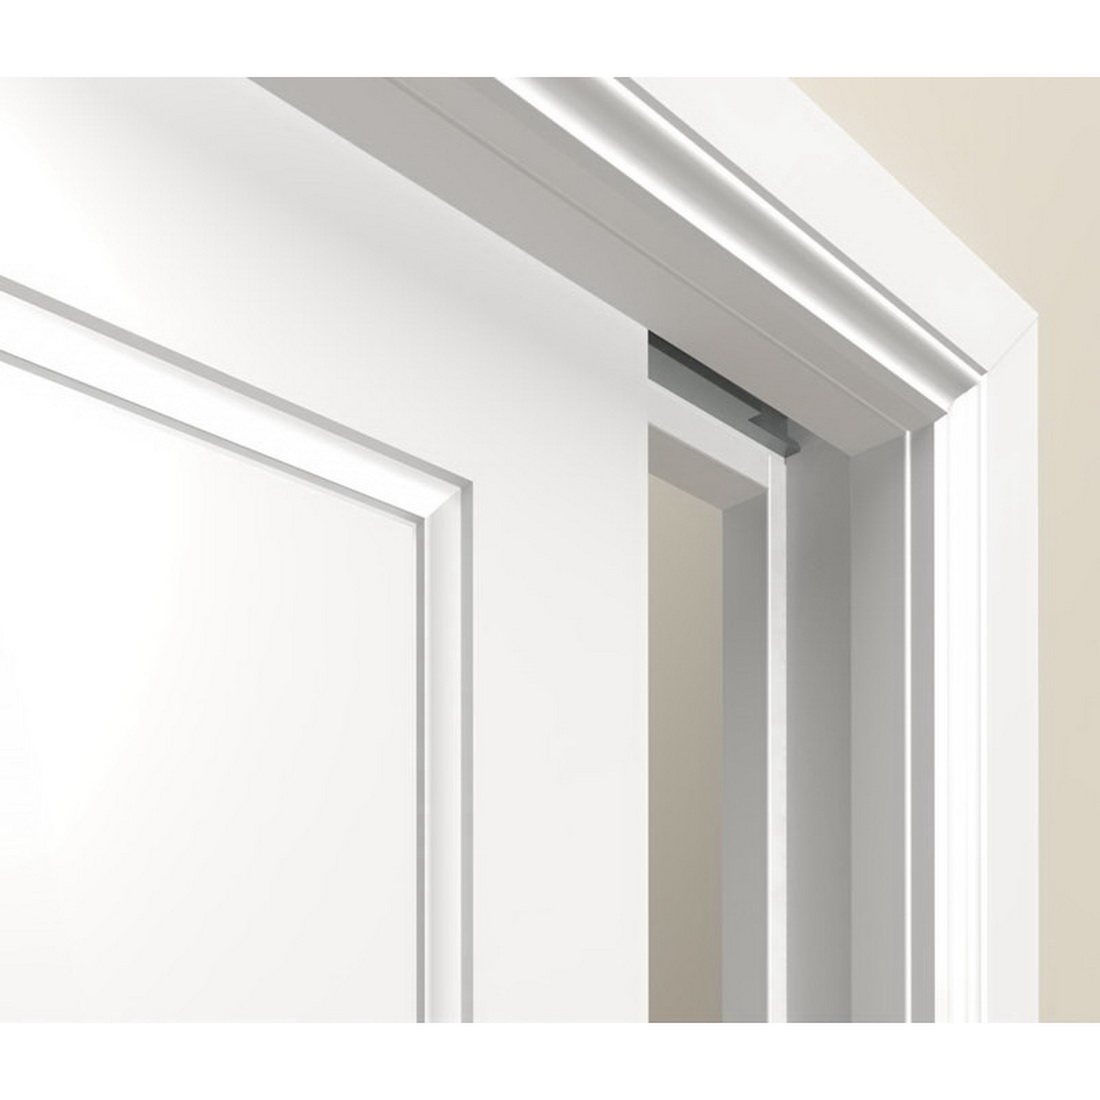 Sofstop Combo Architrave Jamb 1980 x 810 x 10mm Clear Pine